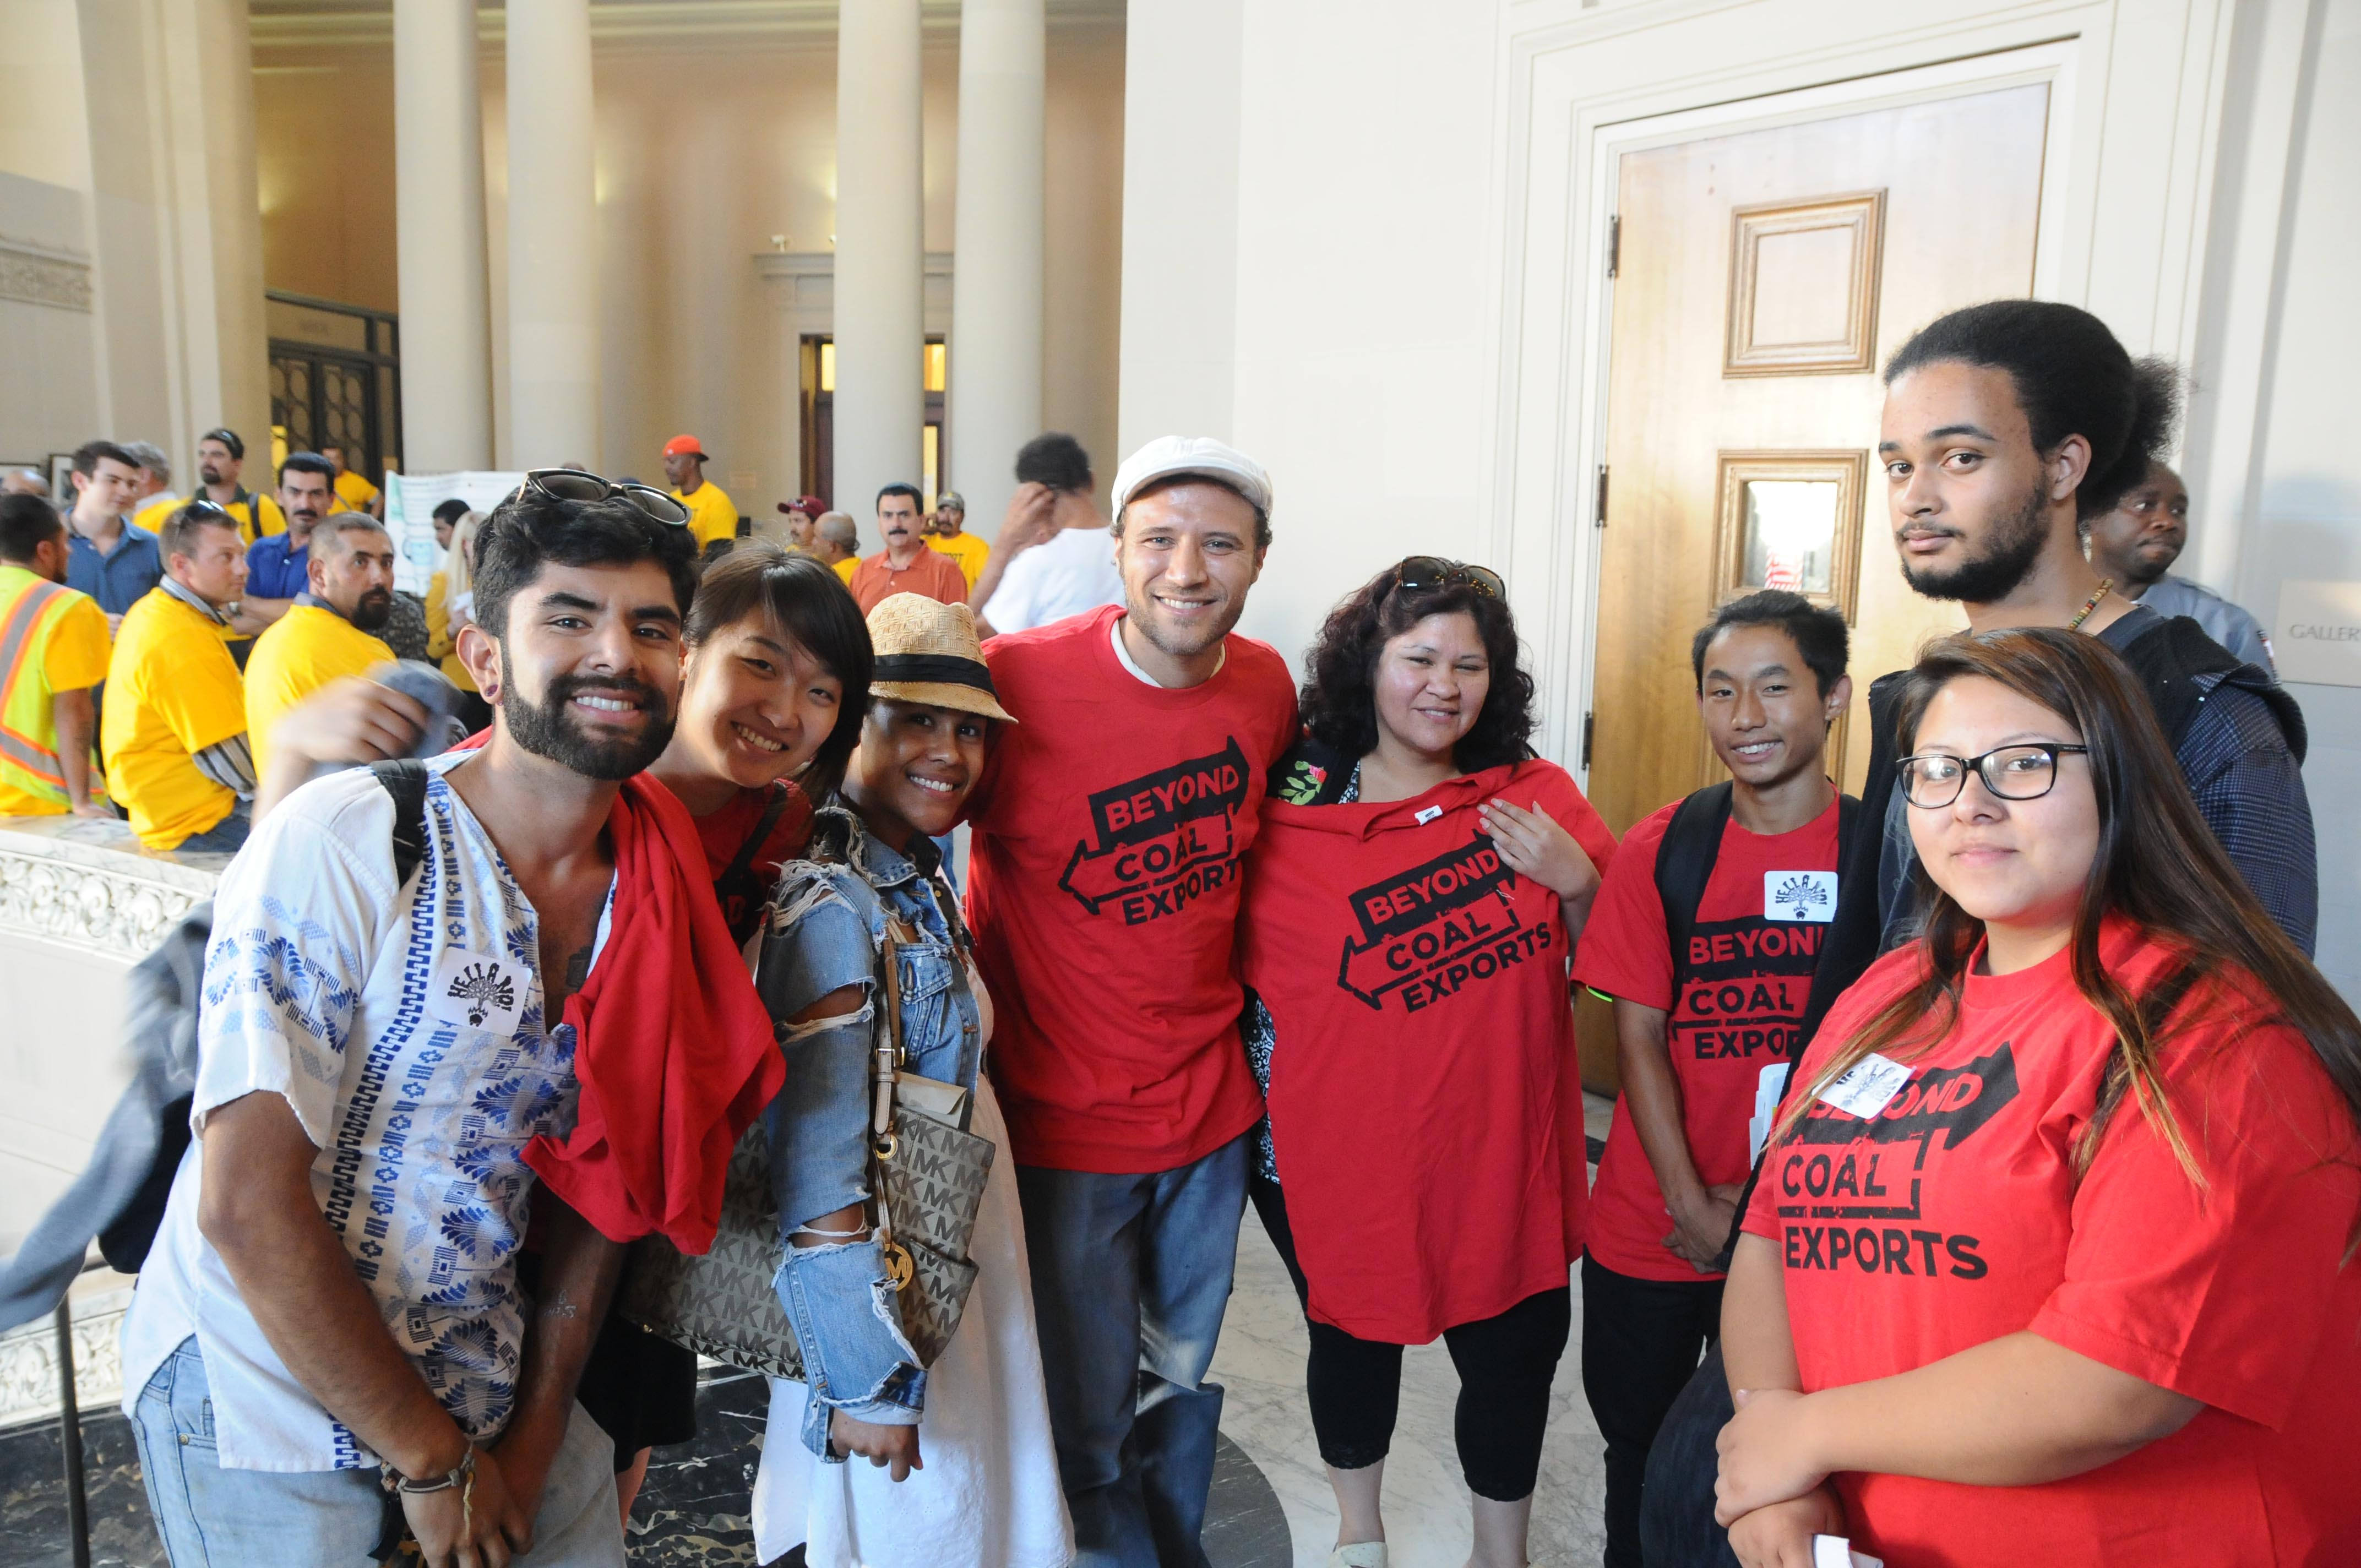 Demonstrators inside Oakland City Council hearing on coal. © 2015 Eric  K. Arnold